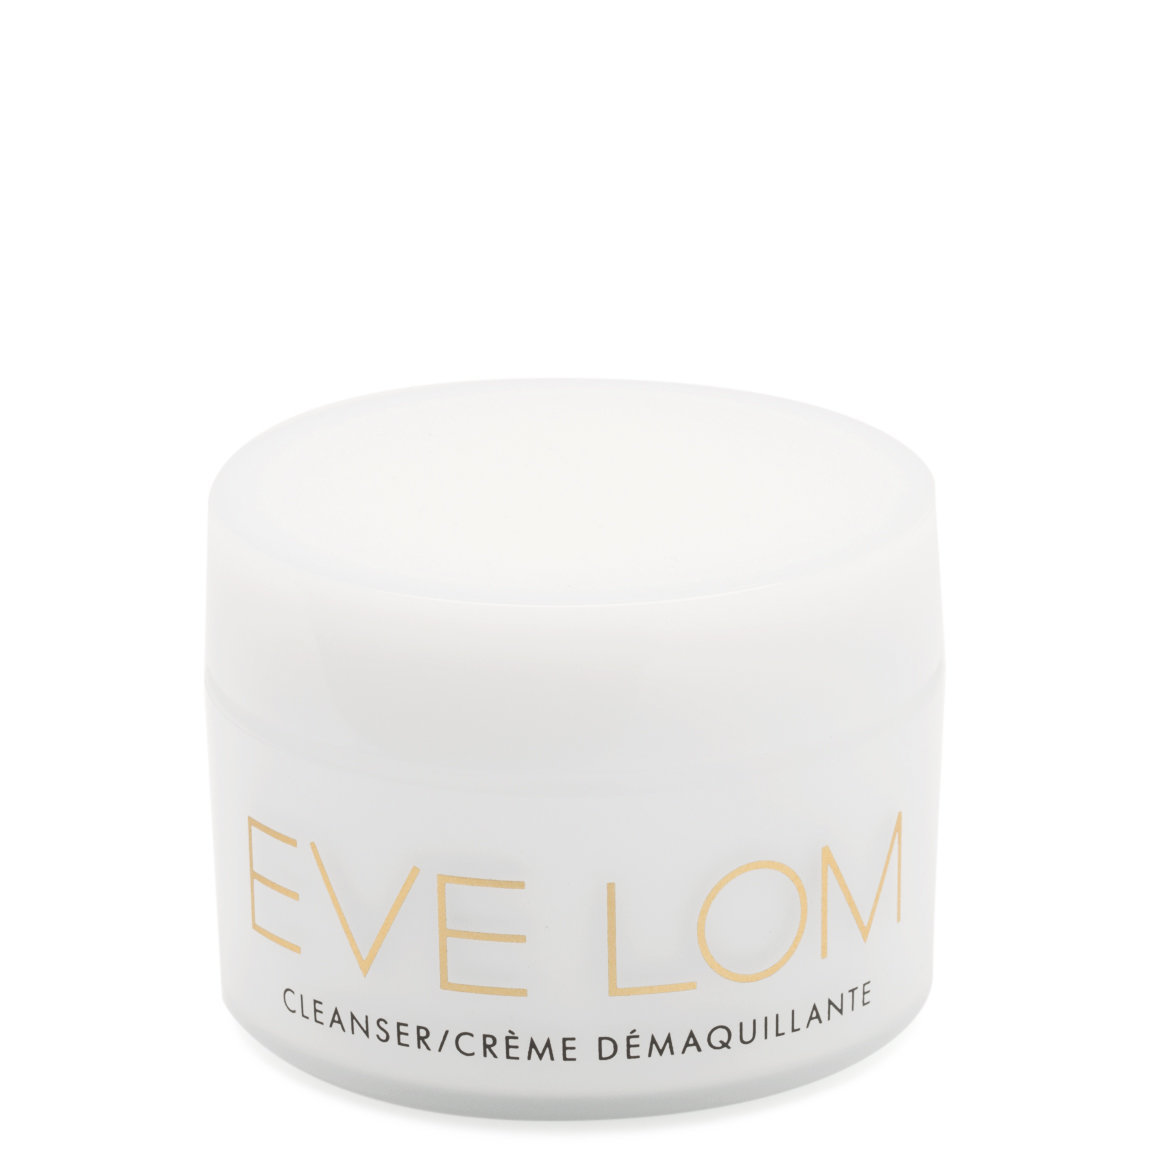 EVE LOM Cleanser 20 ml alternative view 1 - product swatch.